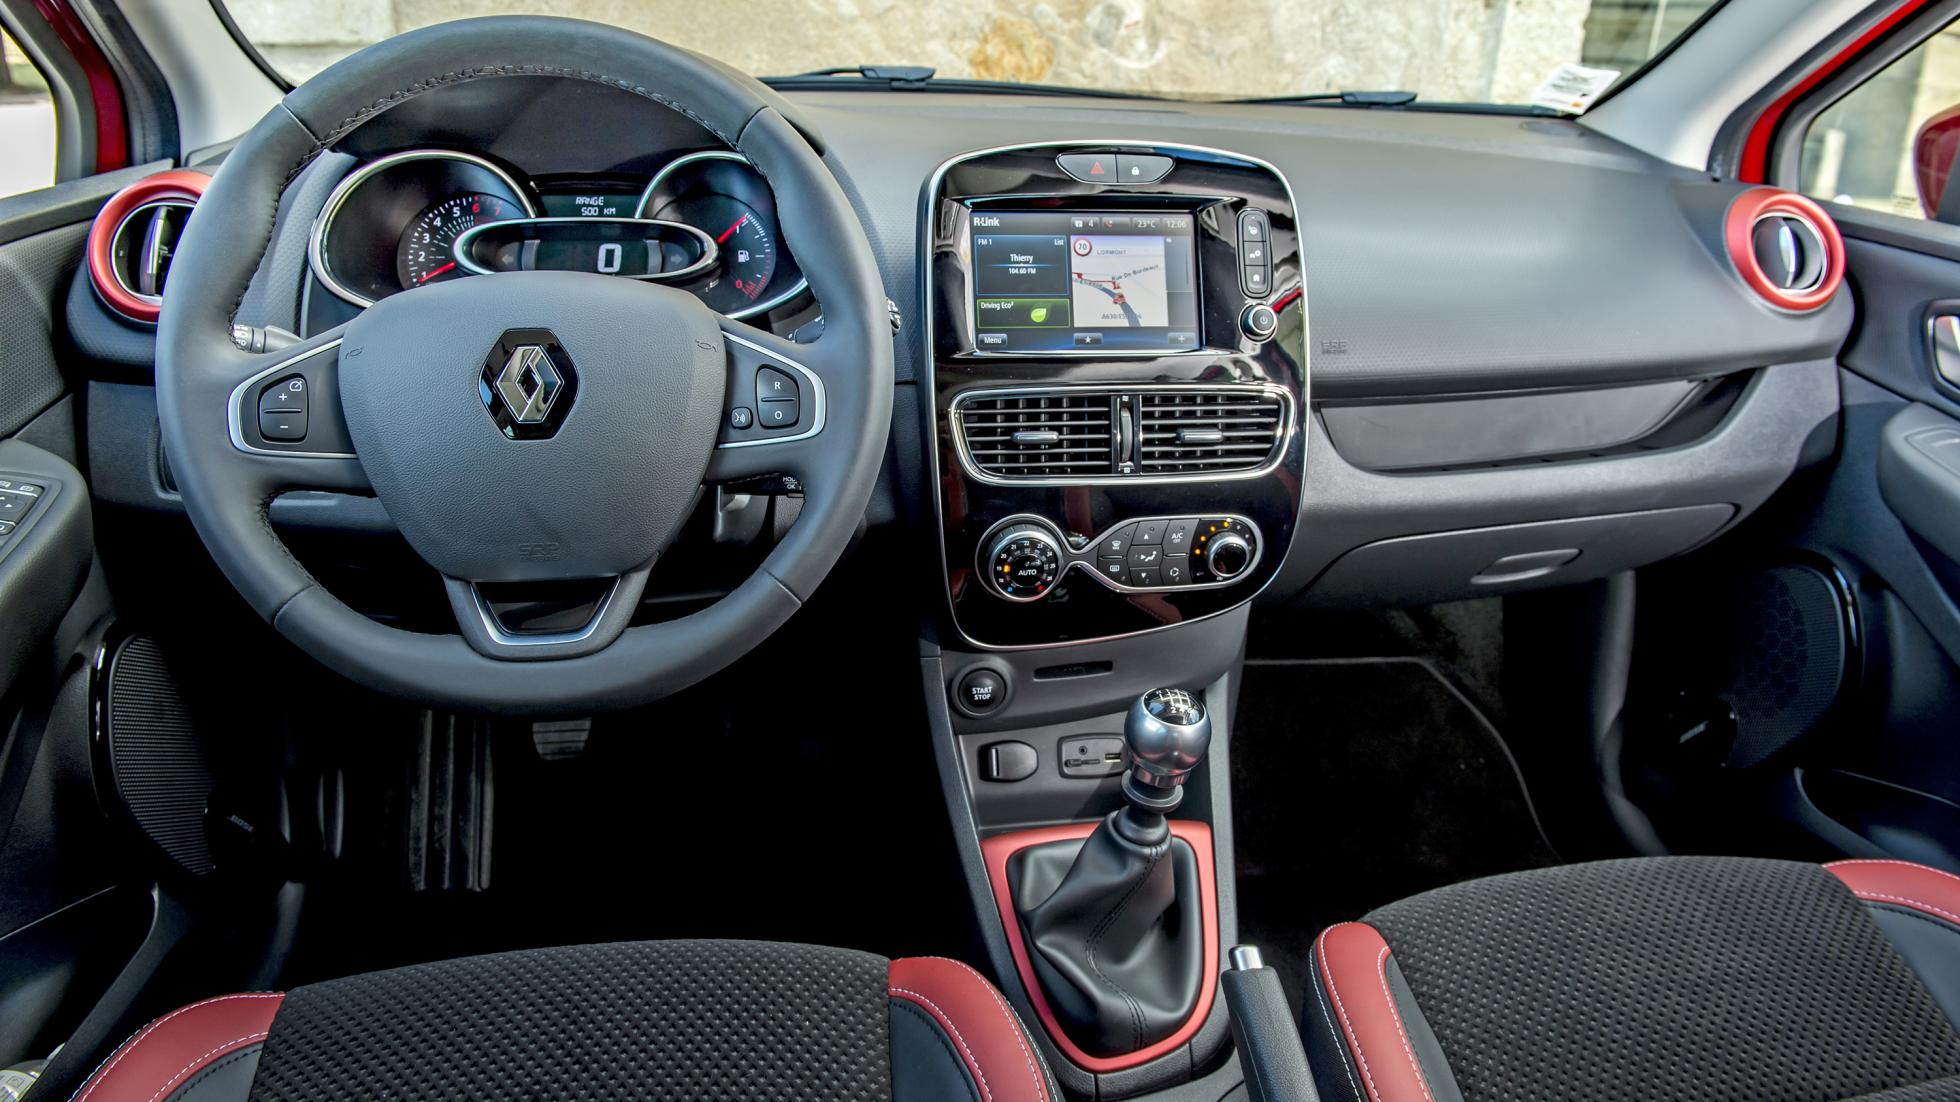 Renault clio gets mid cycle updates Interieur clio 4